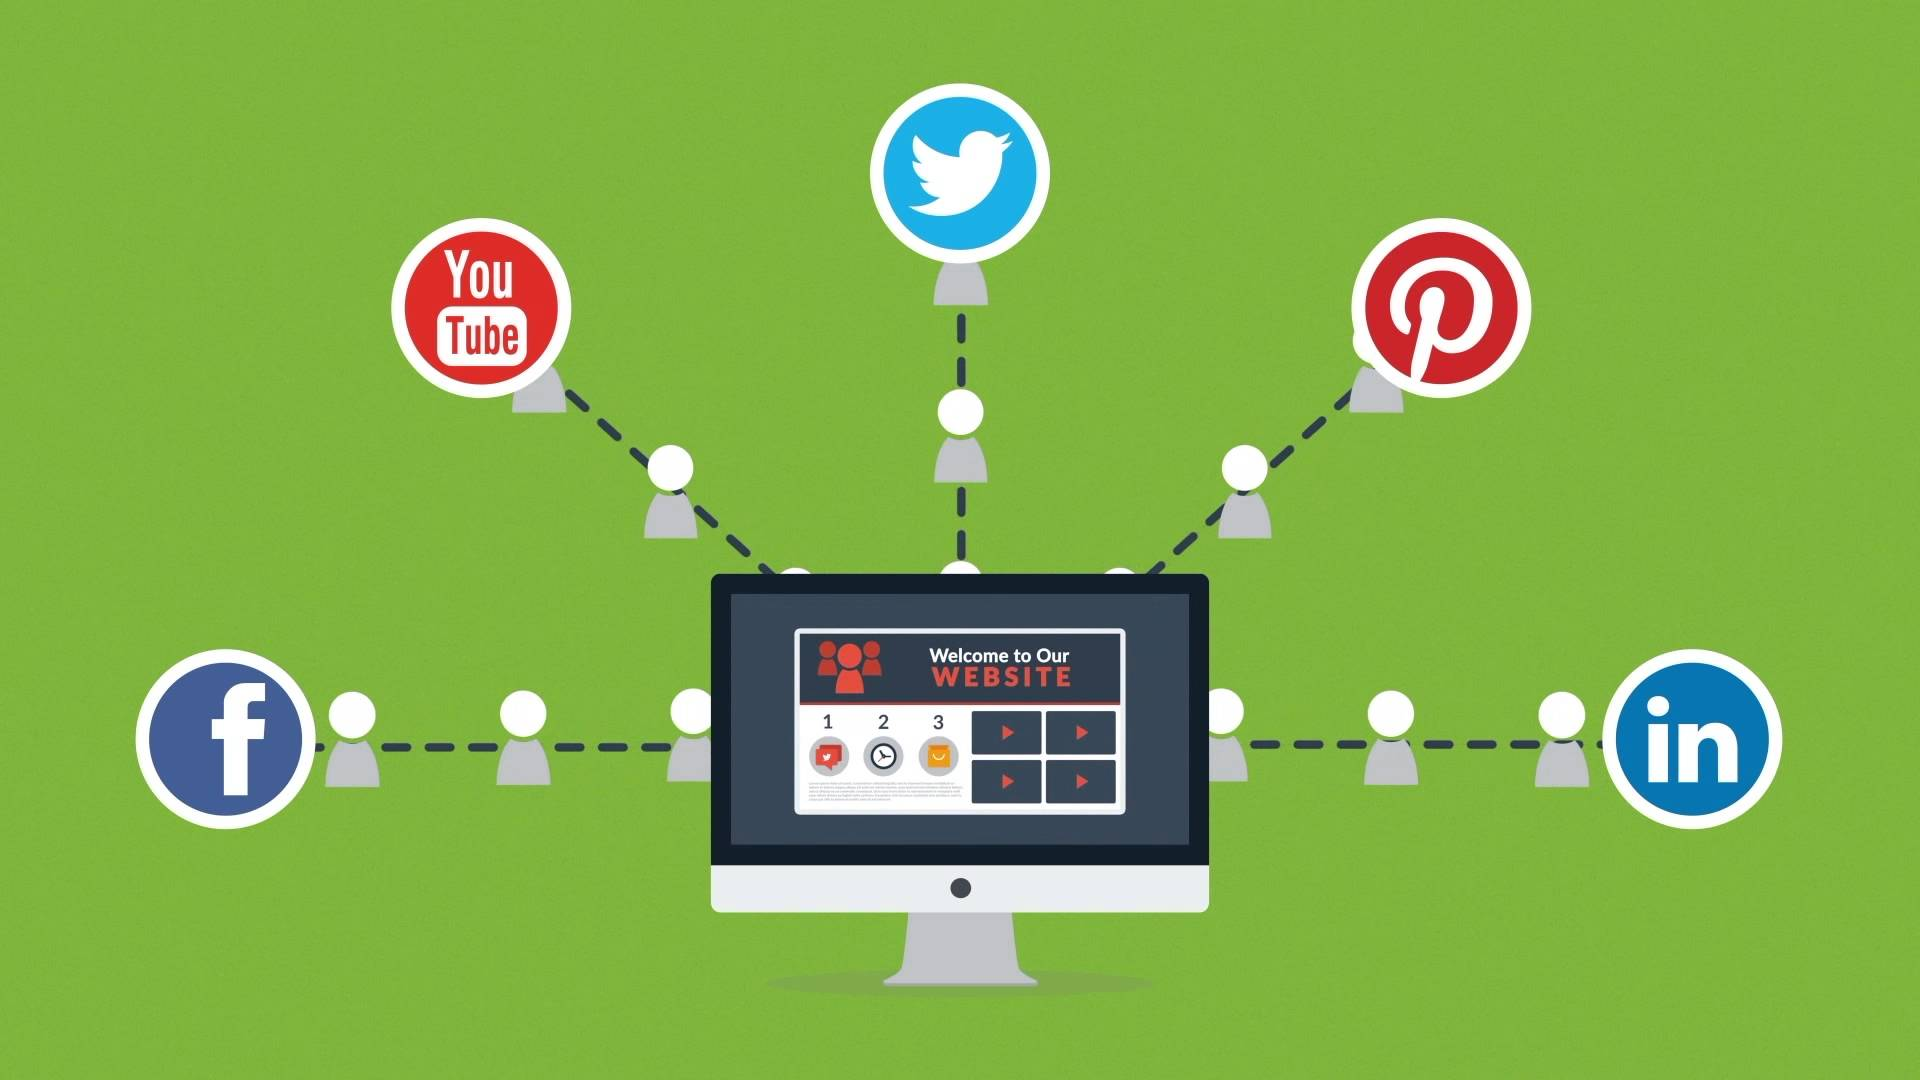 Social Media Marketing Services in Warrnambool by WestVic Web